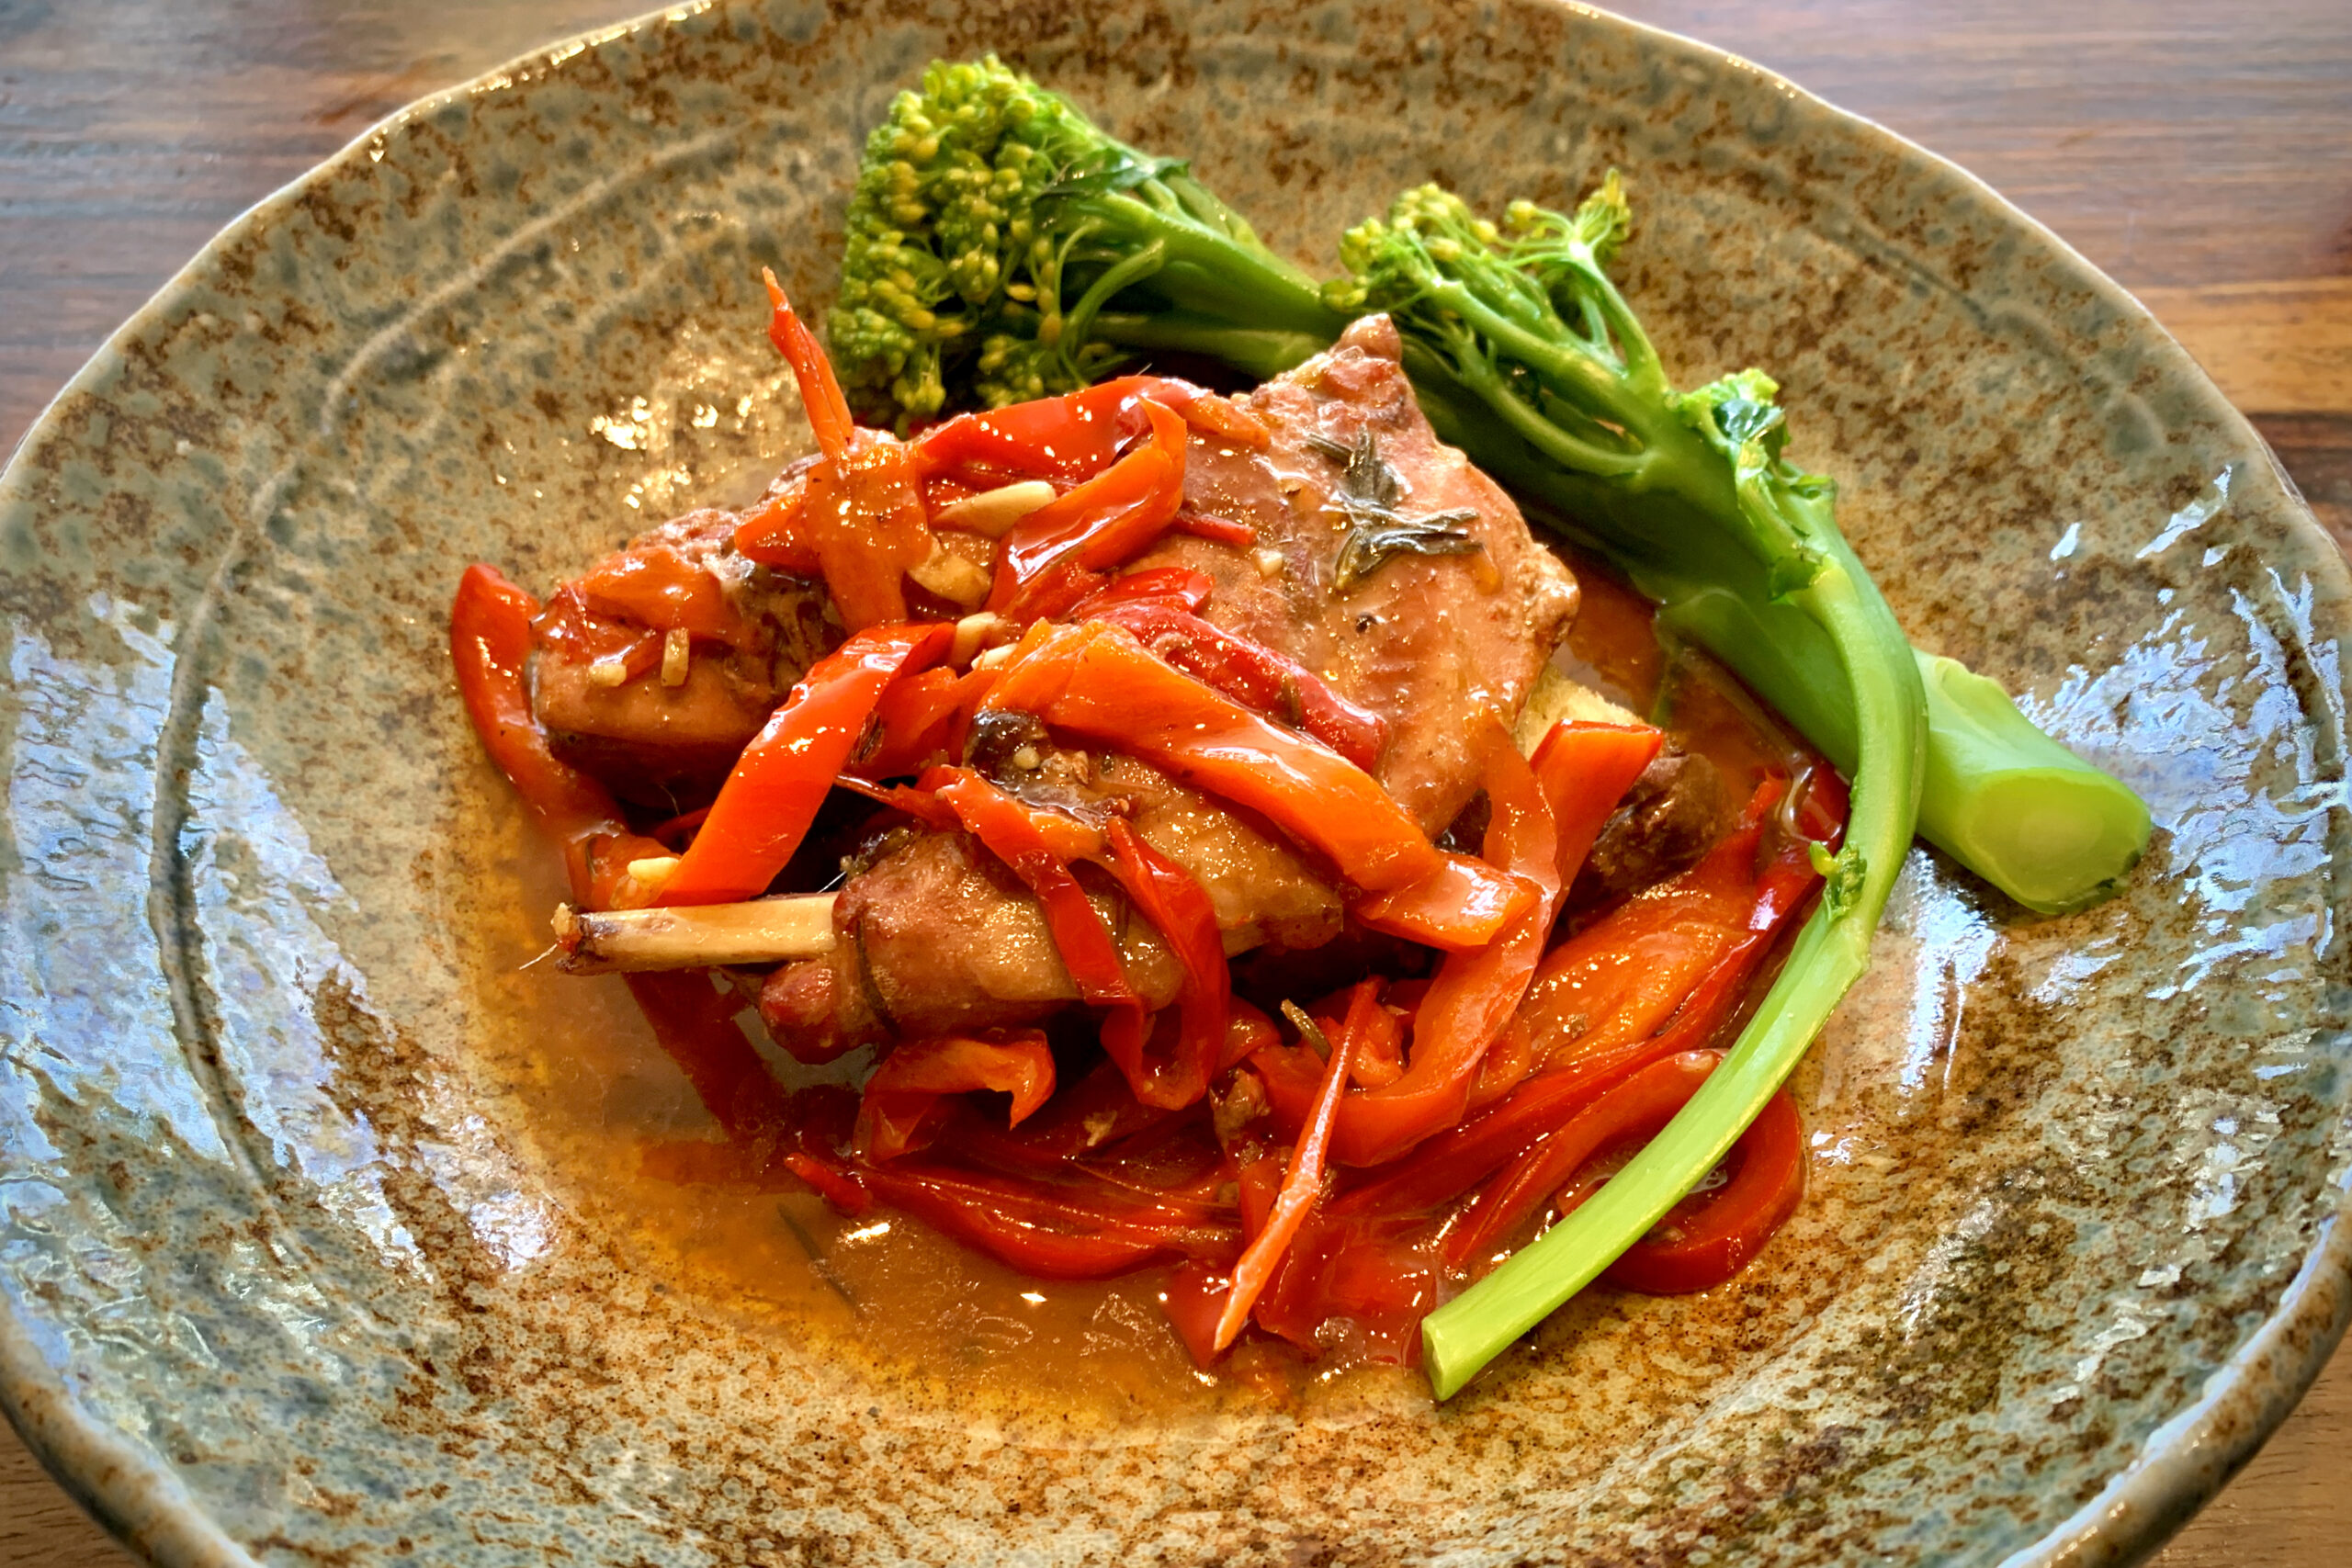 Italian rabbit with peppers